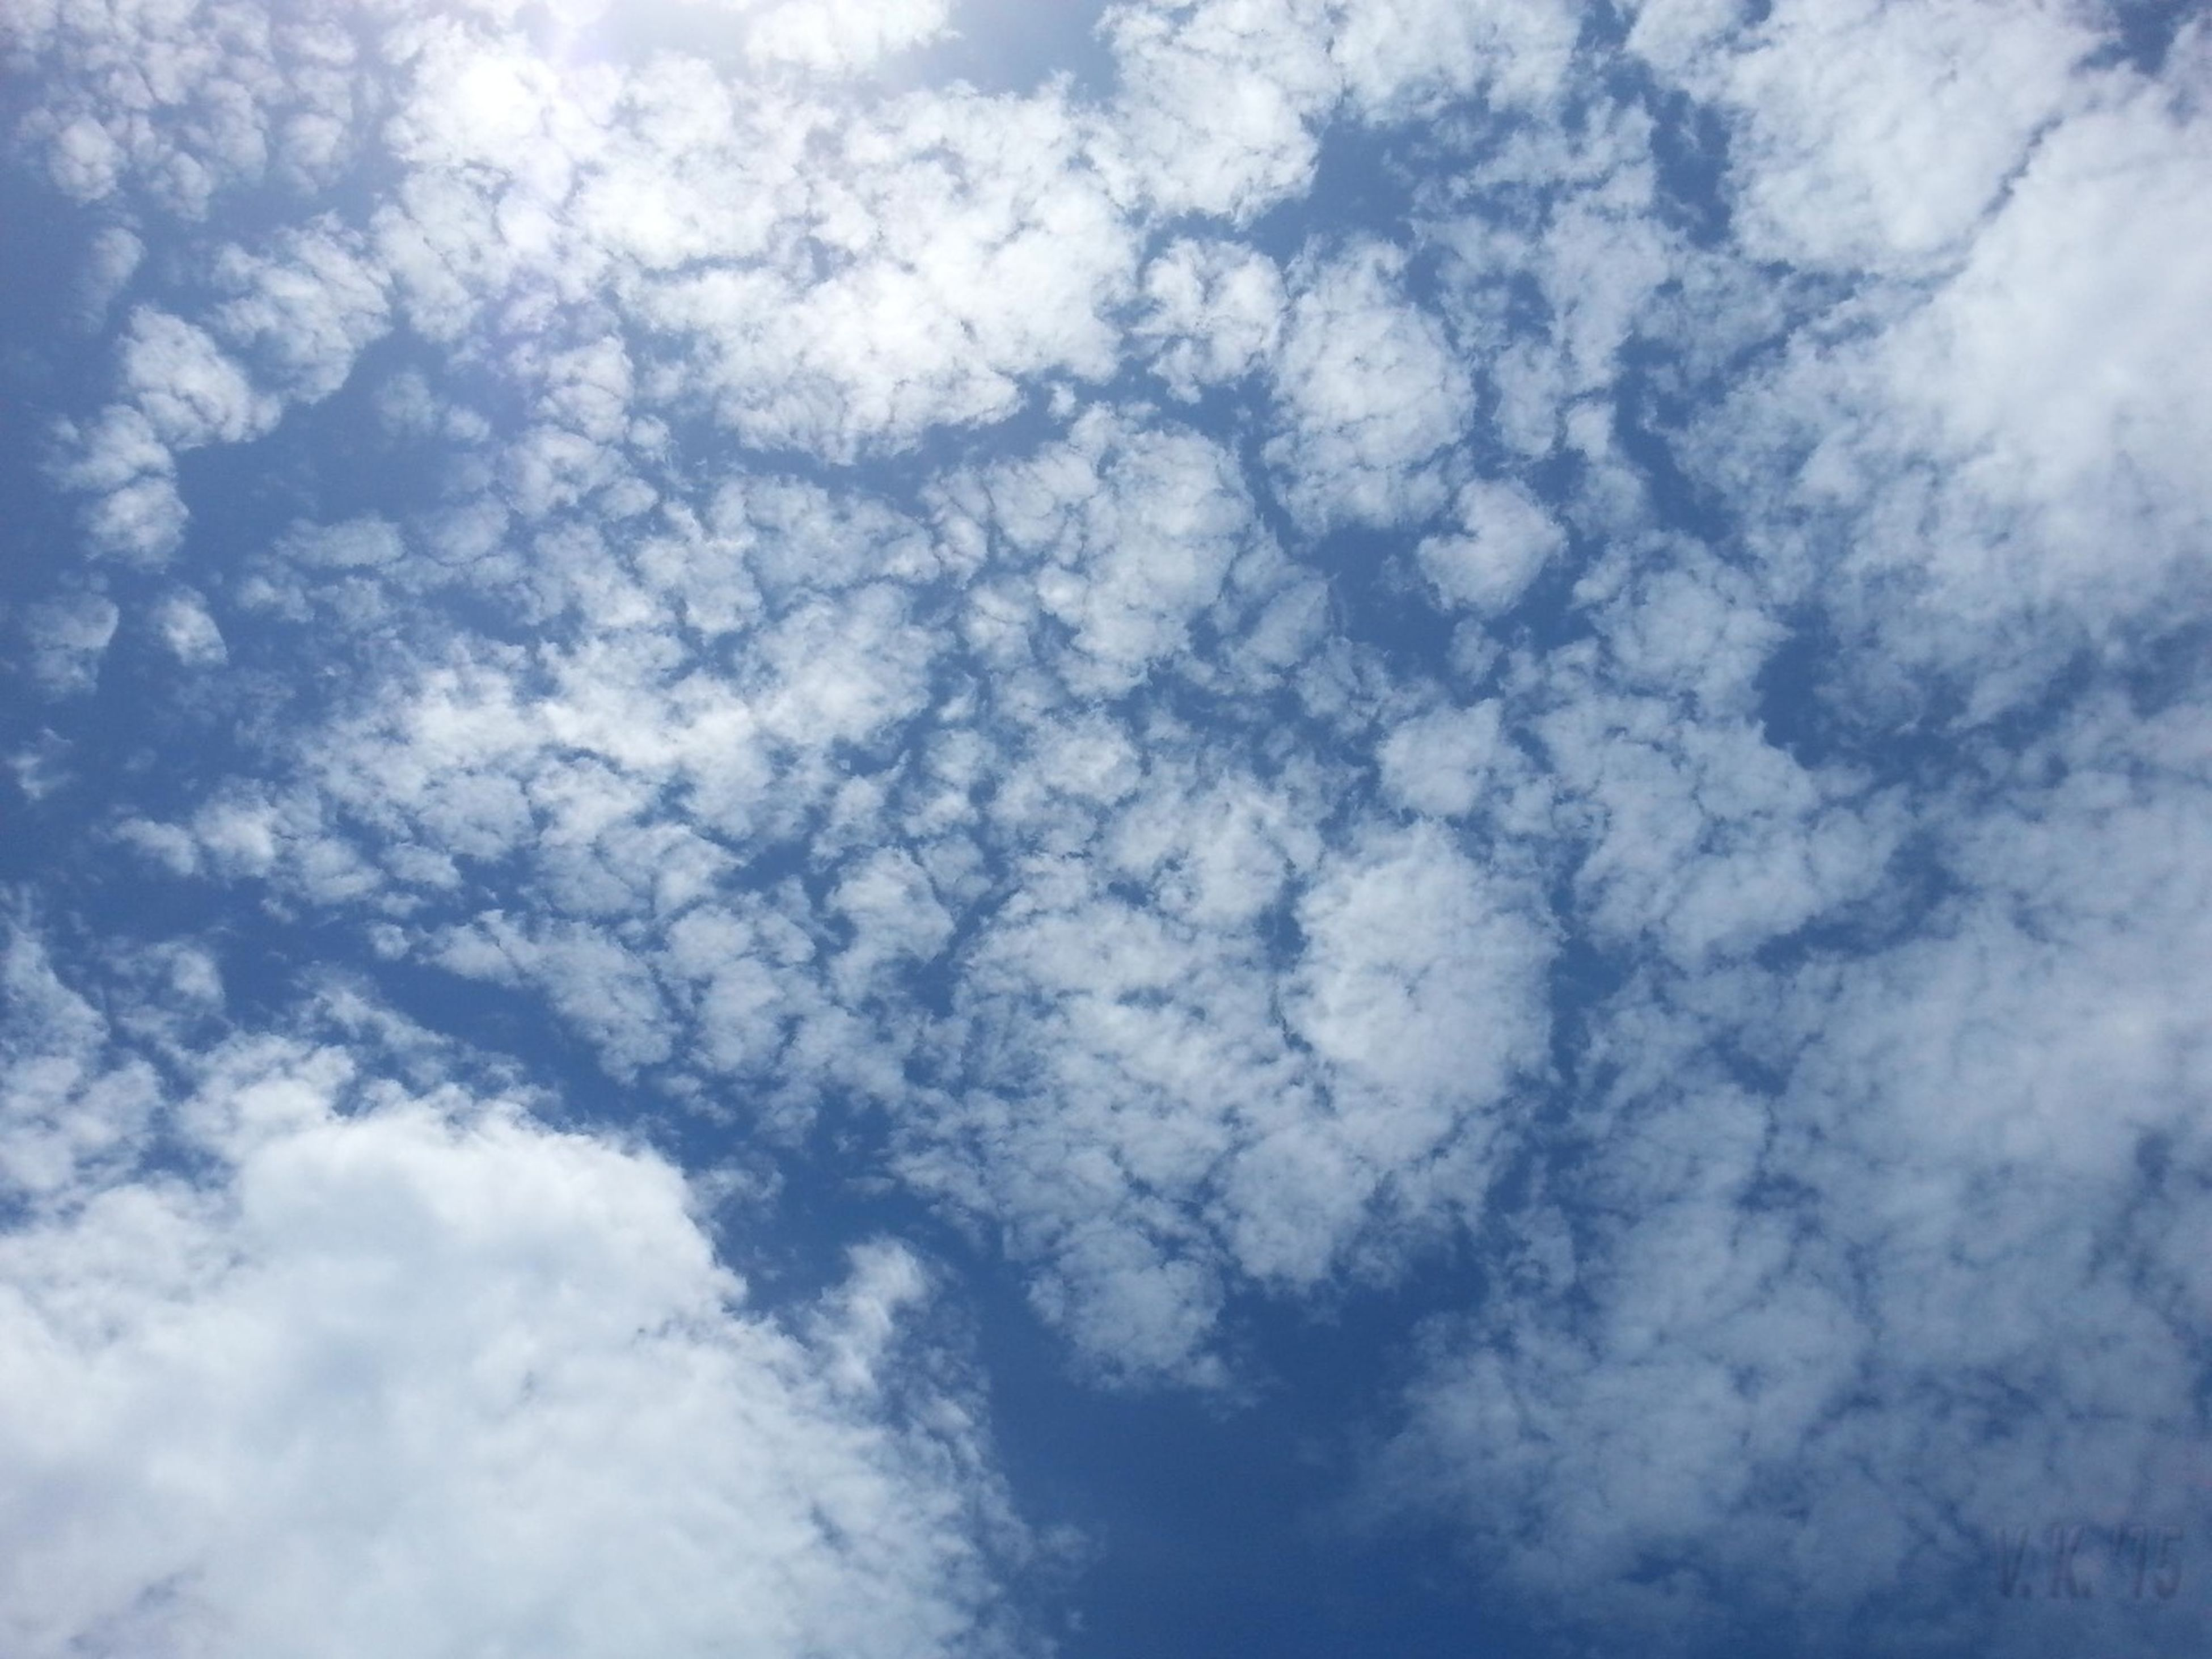 sky, cloud - sky, low angle view, backgrounds, full frame, beauty in nature, tranquility, sky only, cloudy, nature, scenics, tranquil scene, cloudscape, white color, blue, cloud, idyllic, day, weather, outdoors